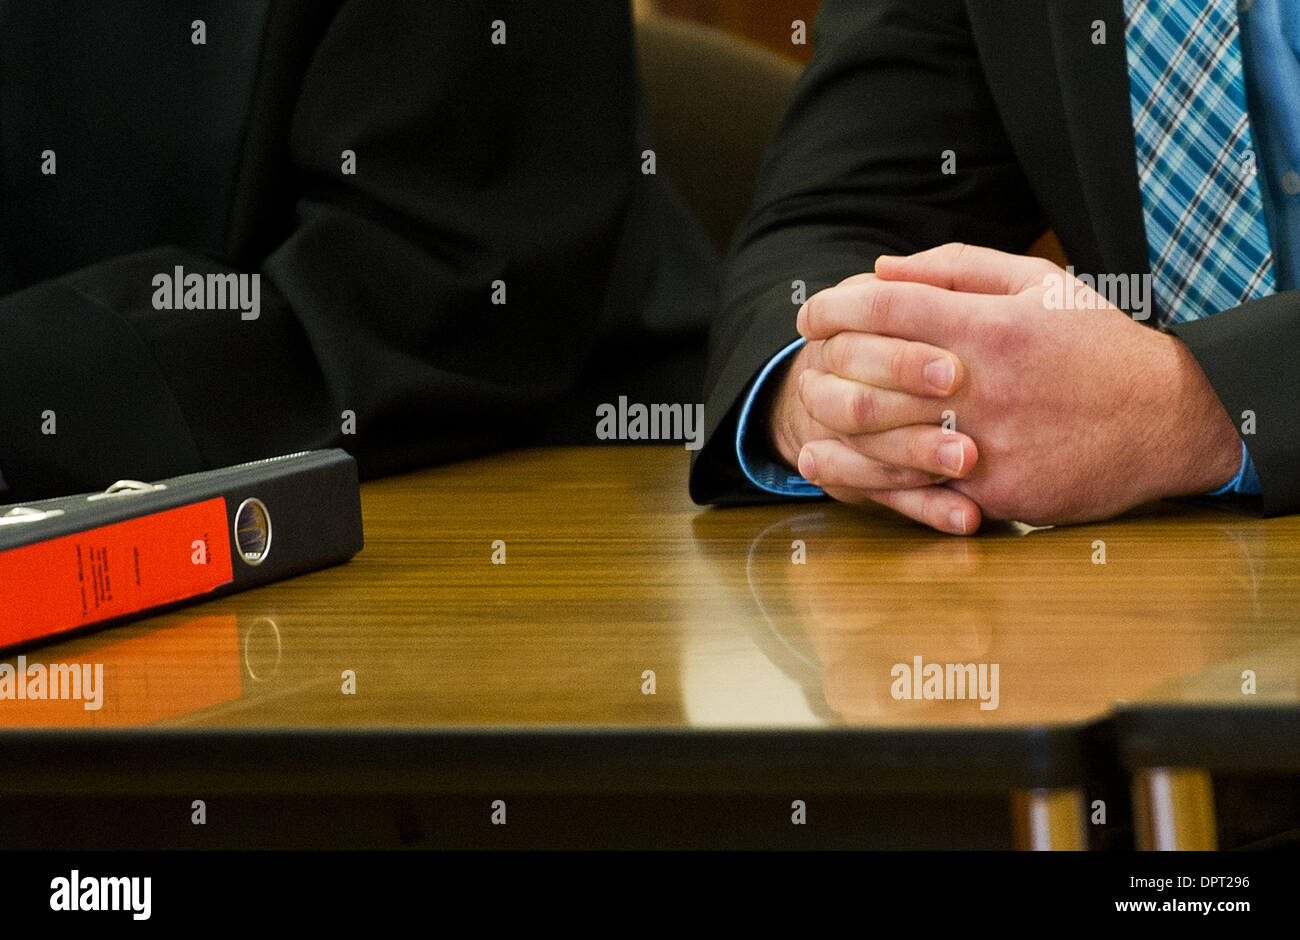 Braunschweig, Germany. 16th Jan, 2014. Defendant Jan Michael T. sits in the courtroom of the Regional Court in Braunschweig, Stock Photo